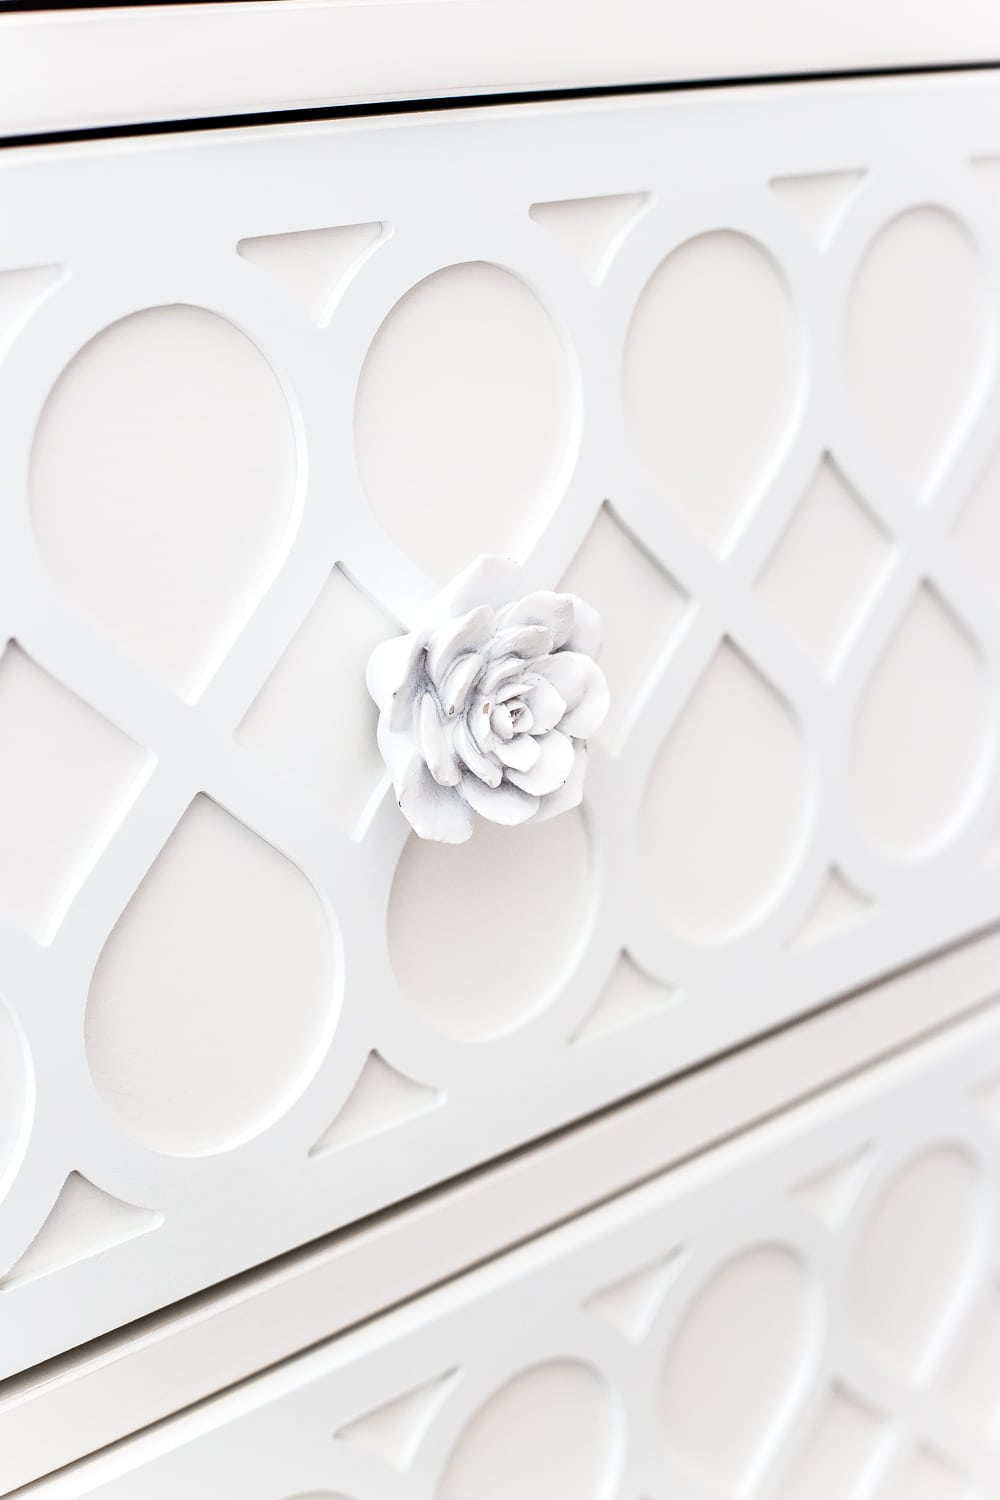 white cactus flower knobs and applique on a plain IKEA dresser